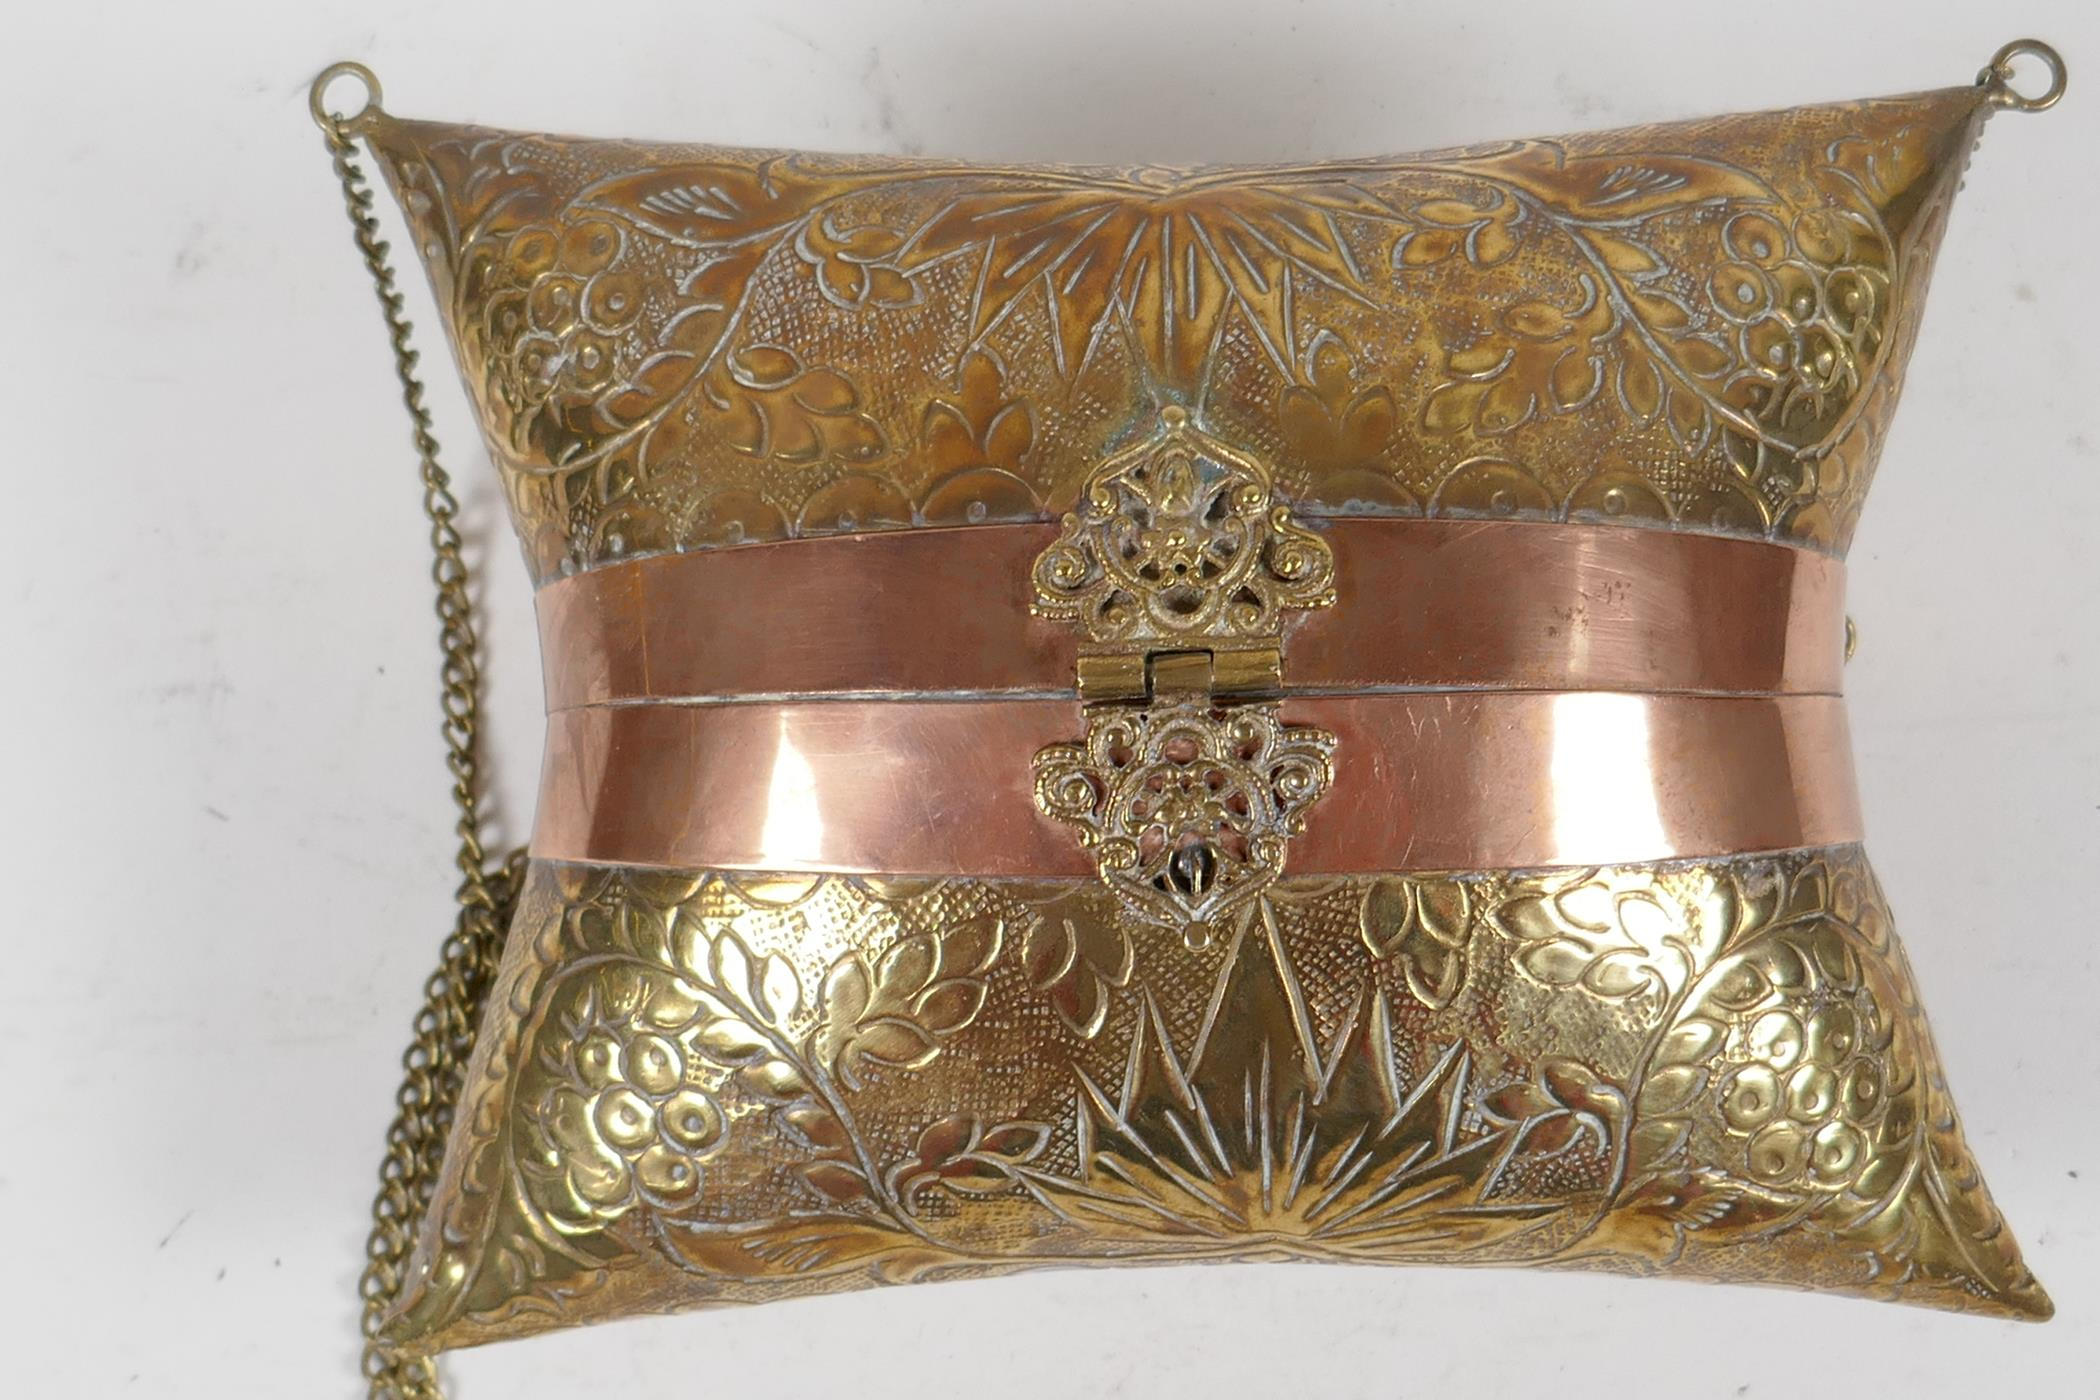 An Indian brass cushion shaped shoulder purse with engraved floral decoration, coppered bands and